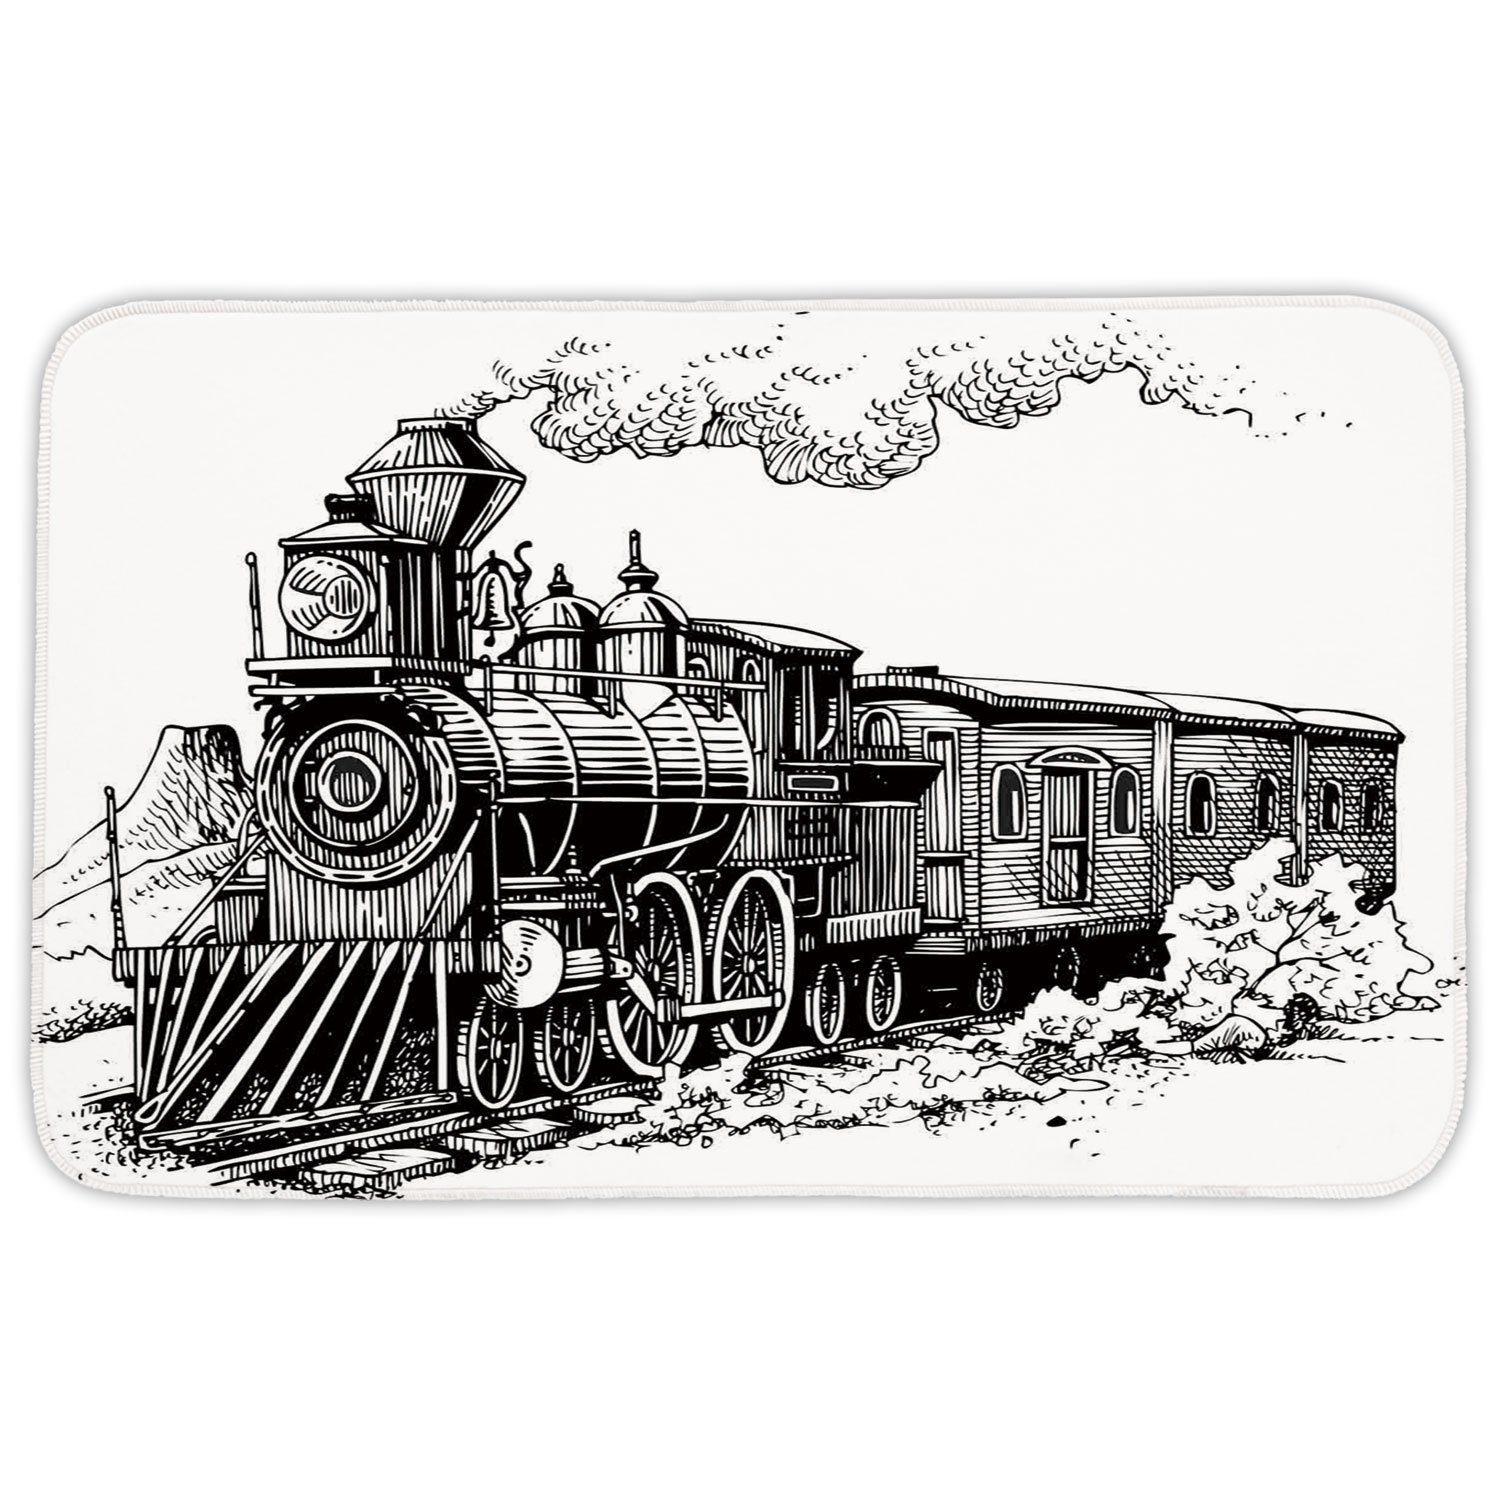 Rectangular Area Rug Mat Rug,Steam Engine,Rustic Old Train in Country Locomotive Wooden Wagons Rail Road with Smoke,Black and White,Home Decor Mat with Non Slip Backing